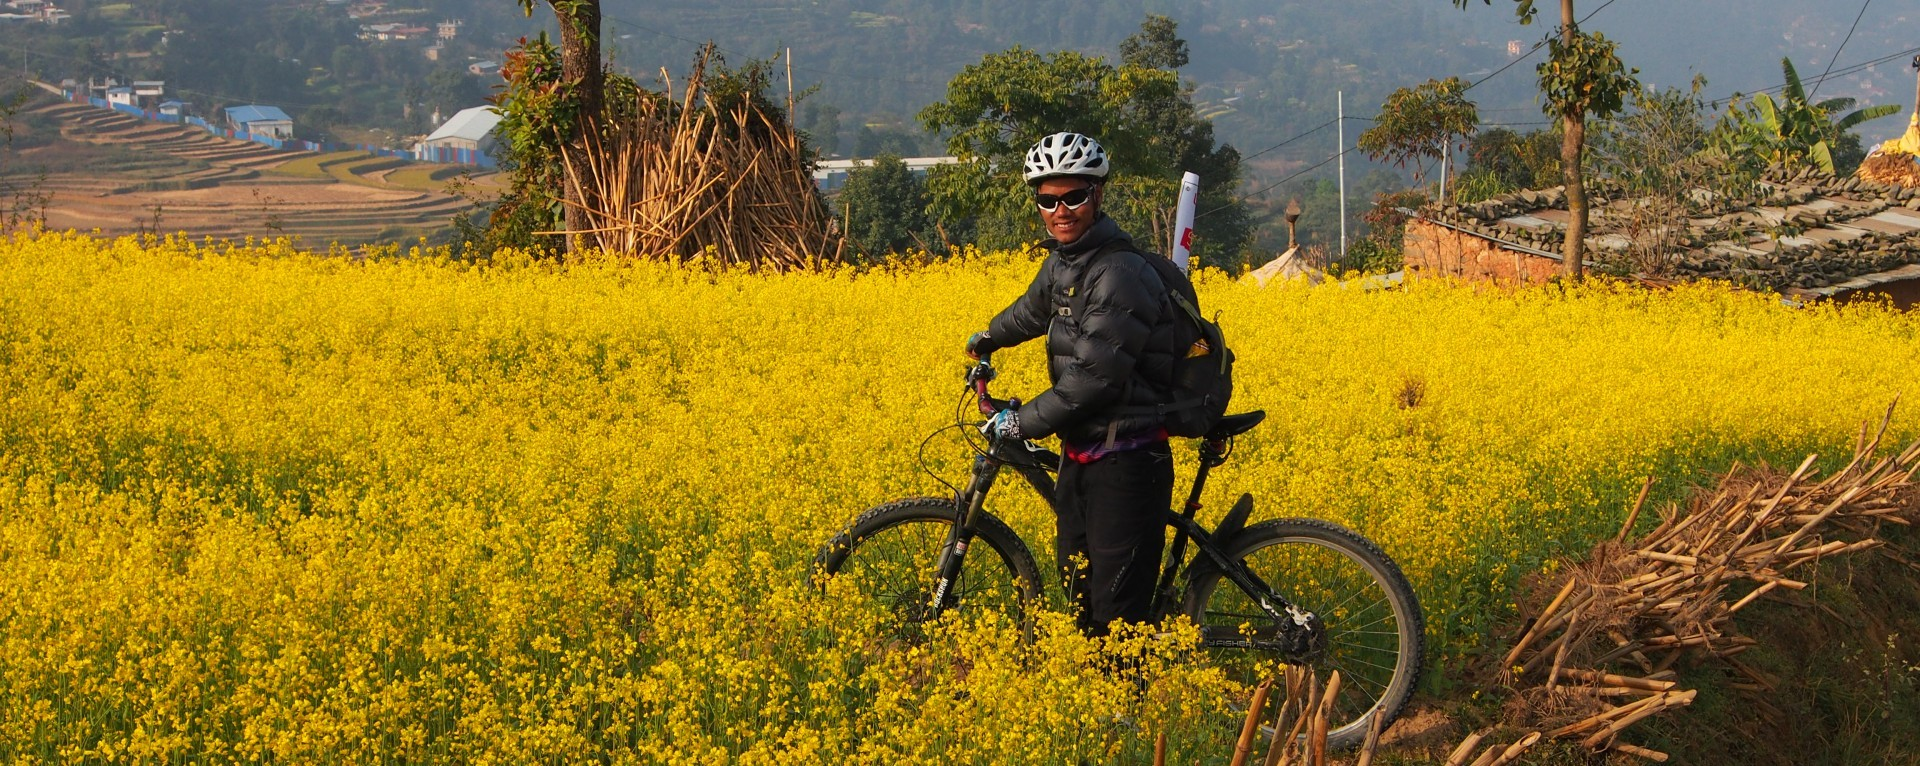 Cycling Track Mustard Field